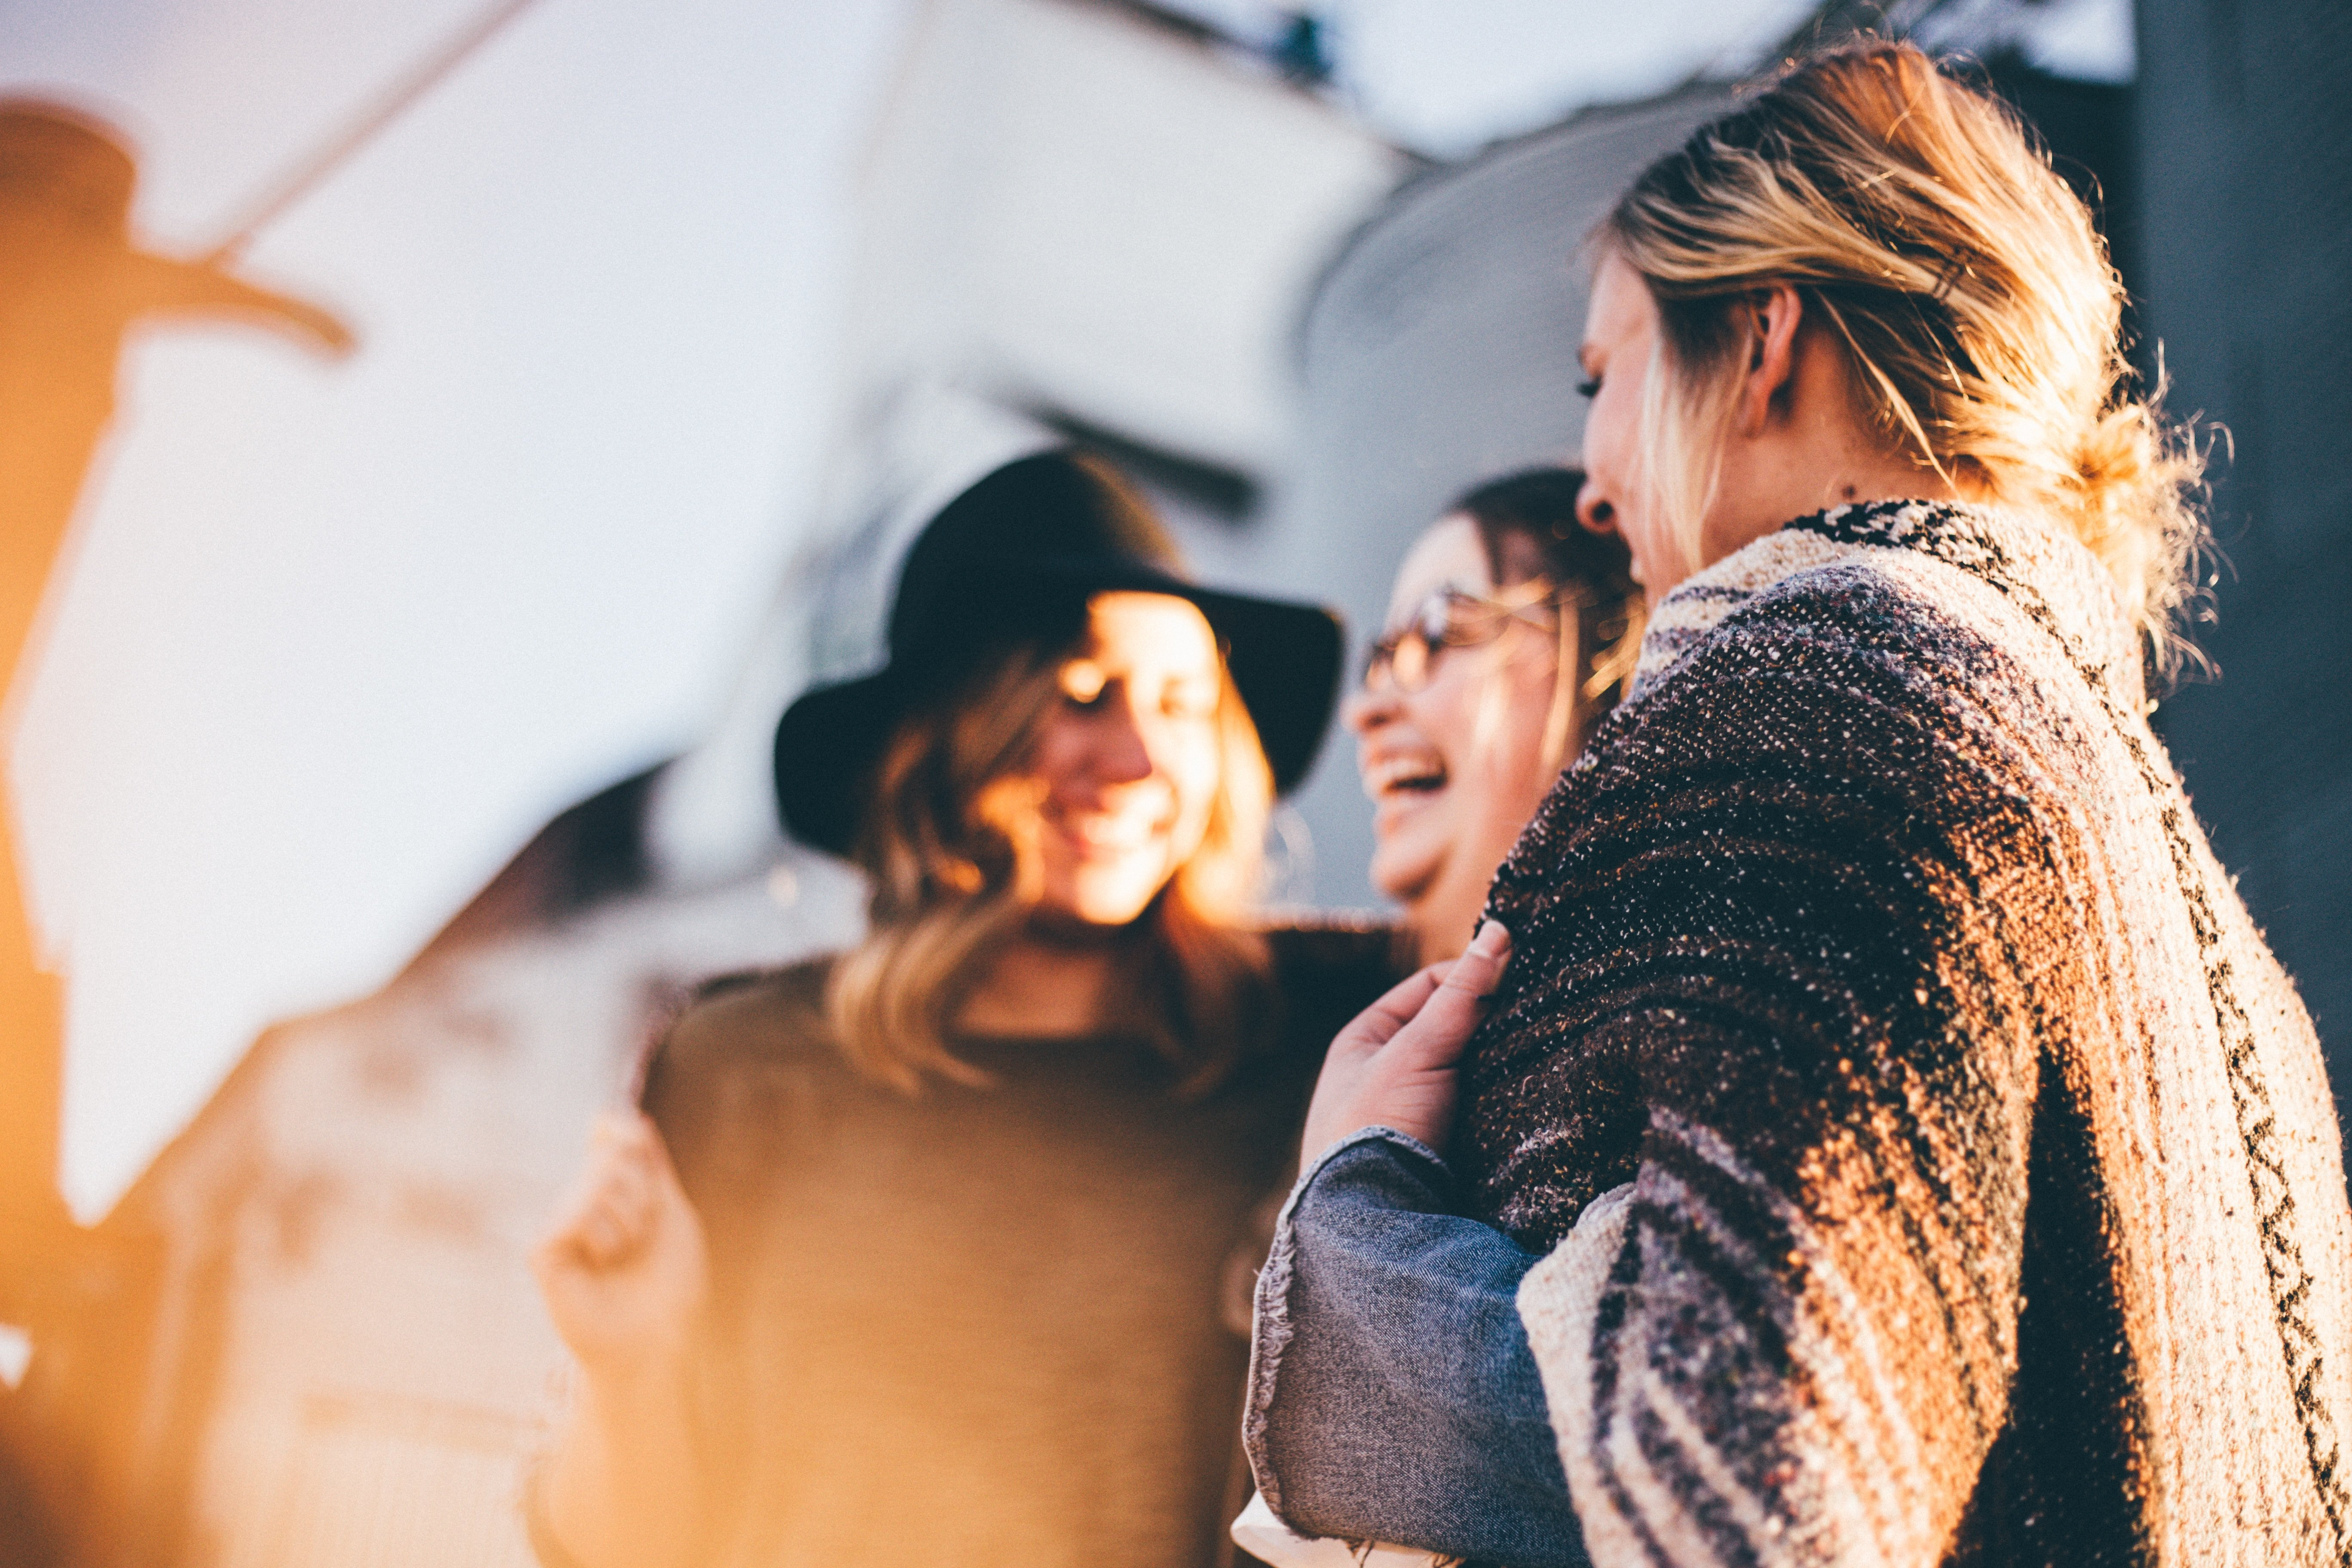 A group of friends laughing at a reunion | Source: Unsplash.com